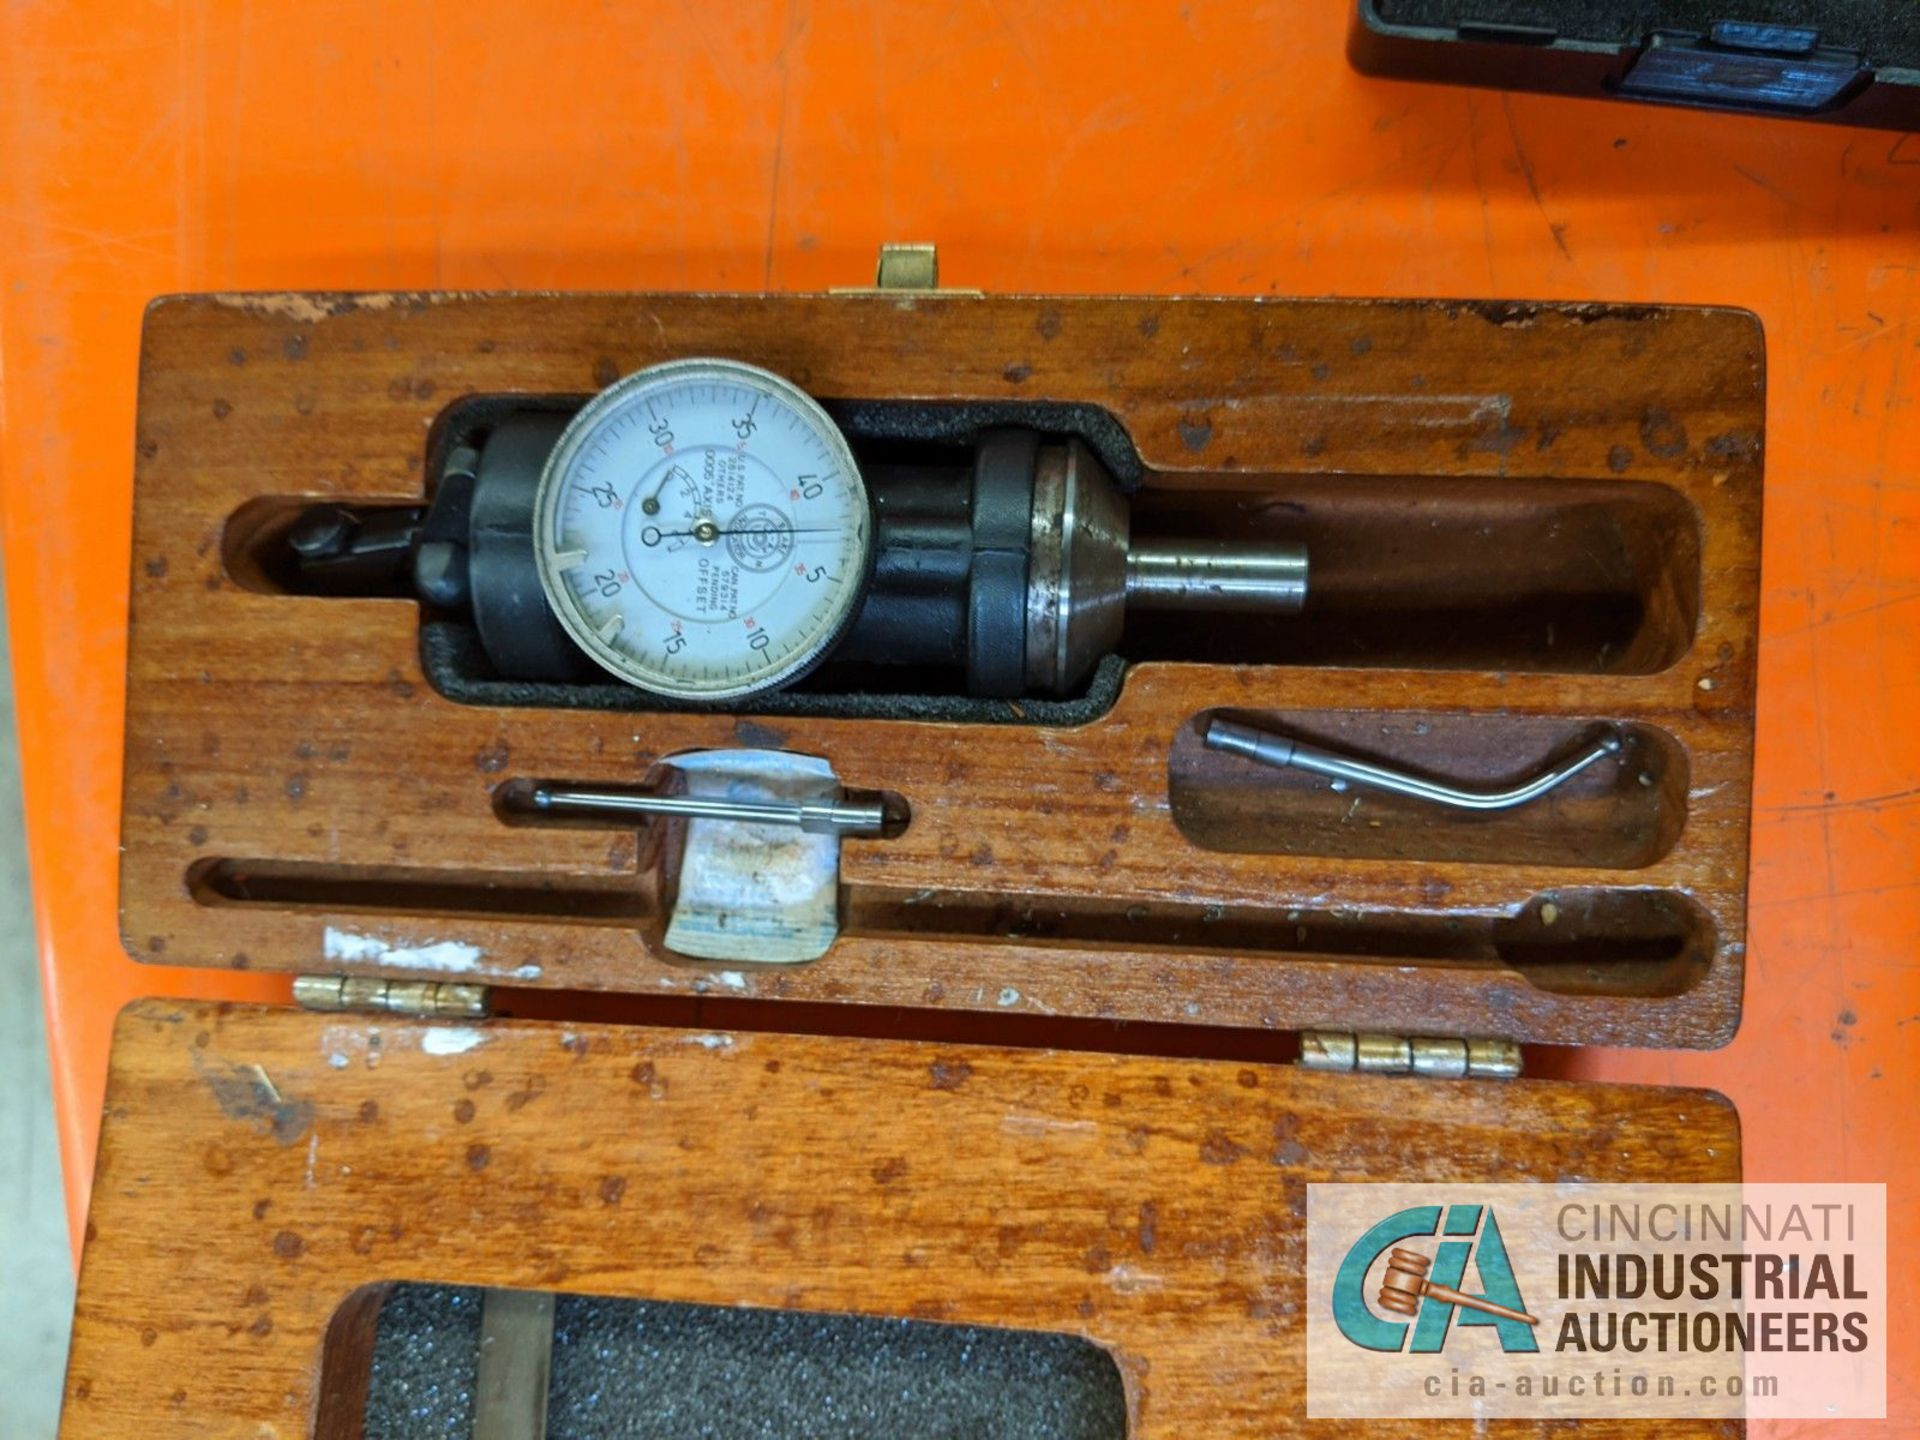 (LOT) ASSORTED DIAL INDICATORS - Image 7 of 7